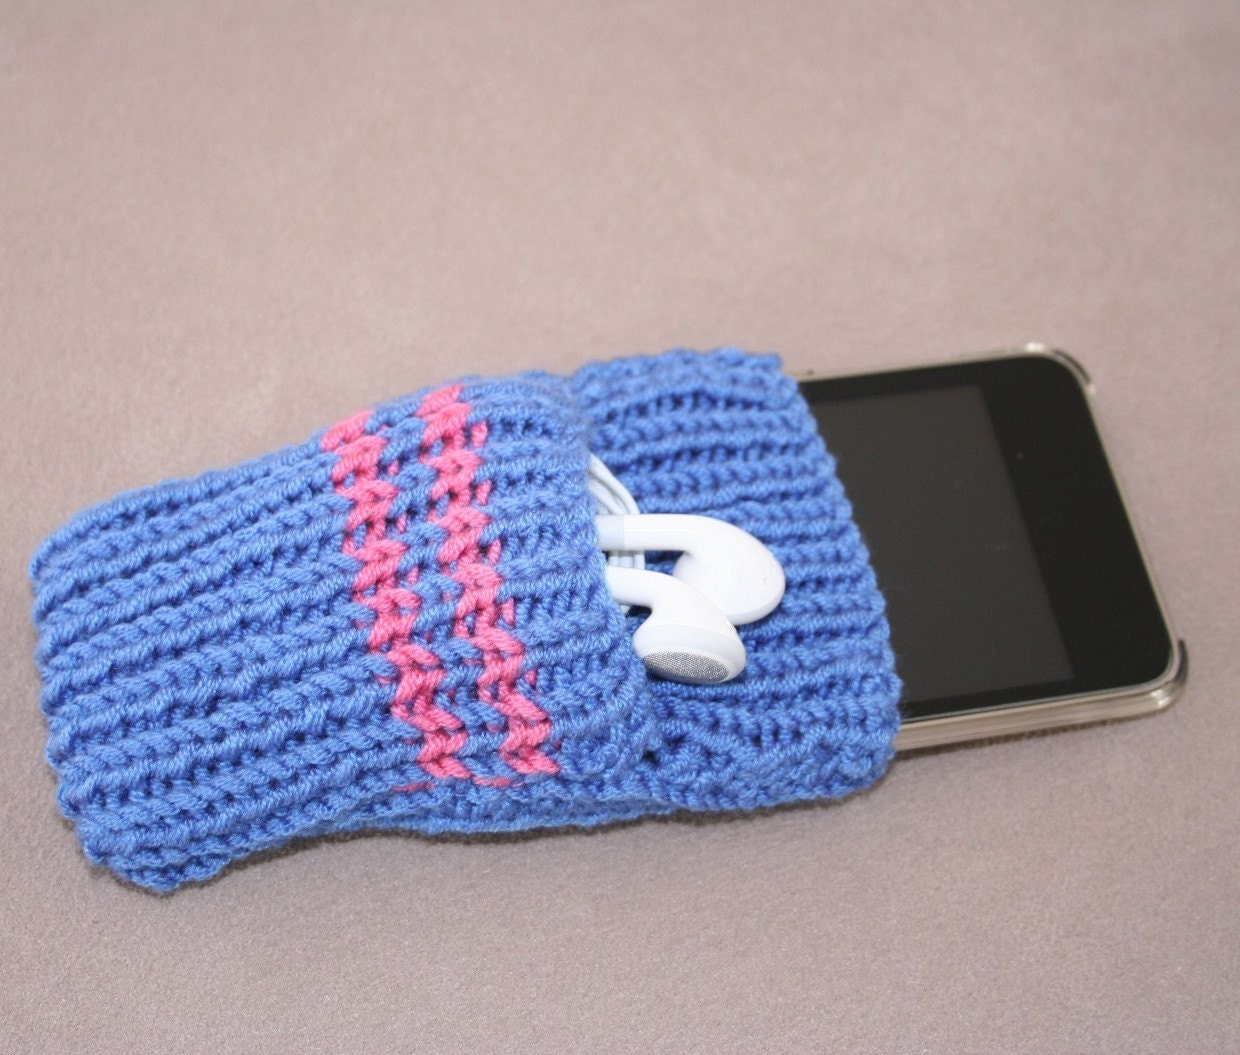 Knitting Pattern For Ipod Sock : iPod Touch/iPhone cases/socks KNITTING PATTERN by kooklacreations